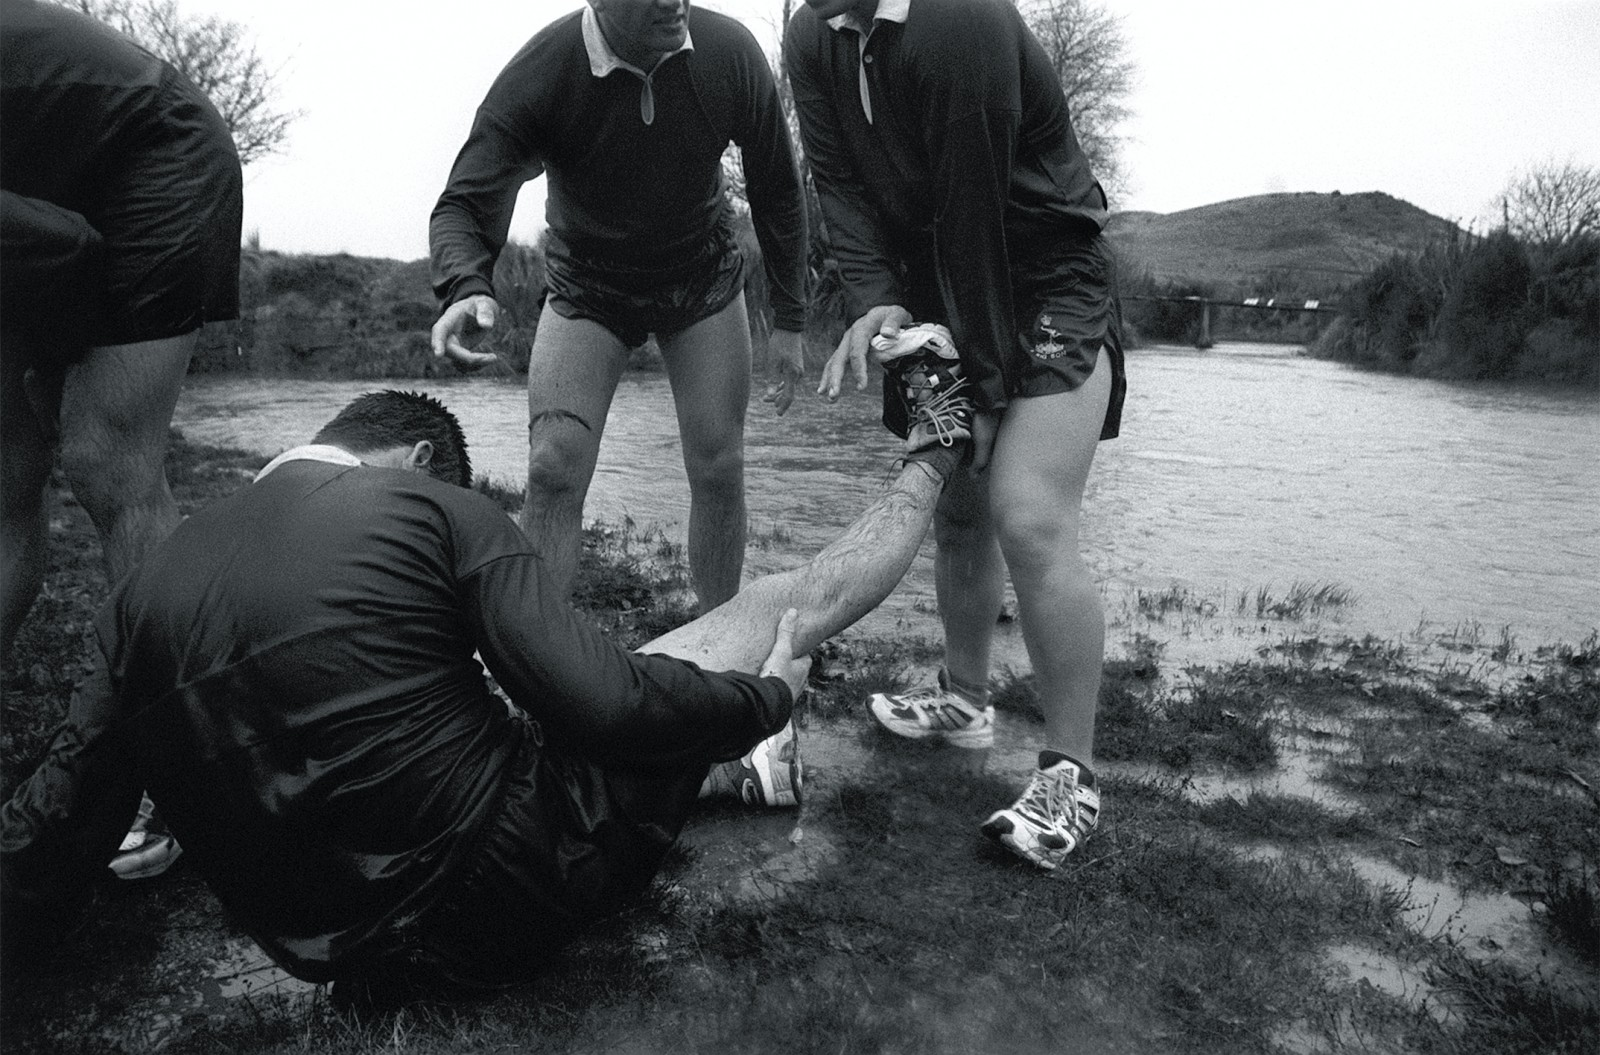 """Bone-chilling river crossings and near-vertical hill climbs take their toll on recruits not used to the rigours of the outdoors. The physical demands aren't the only challenge; army discipline takes some getting used to. A recruit, discovered unshaven, is reprimanded. Later he tells me, """"If they shaved in Vietnam, then that's good enough for me."""" It's not all work; Sundays are free. In the morning, some attend church, and the afternoon can be spent with visiting friends and family."""